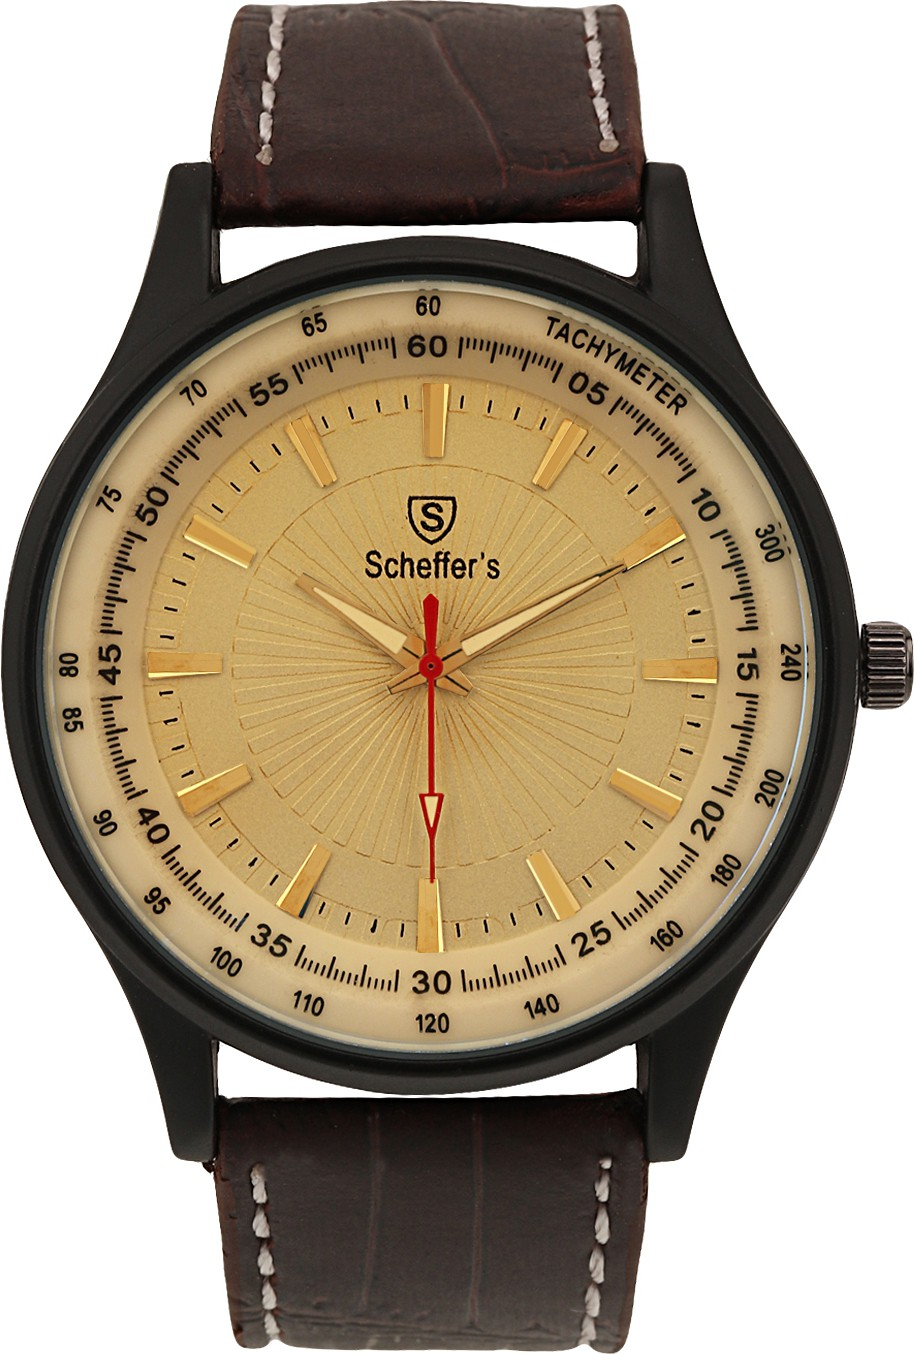 Flipkart - Watches Below Rs. 349